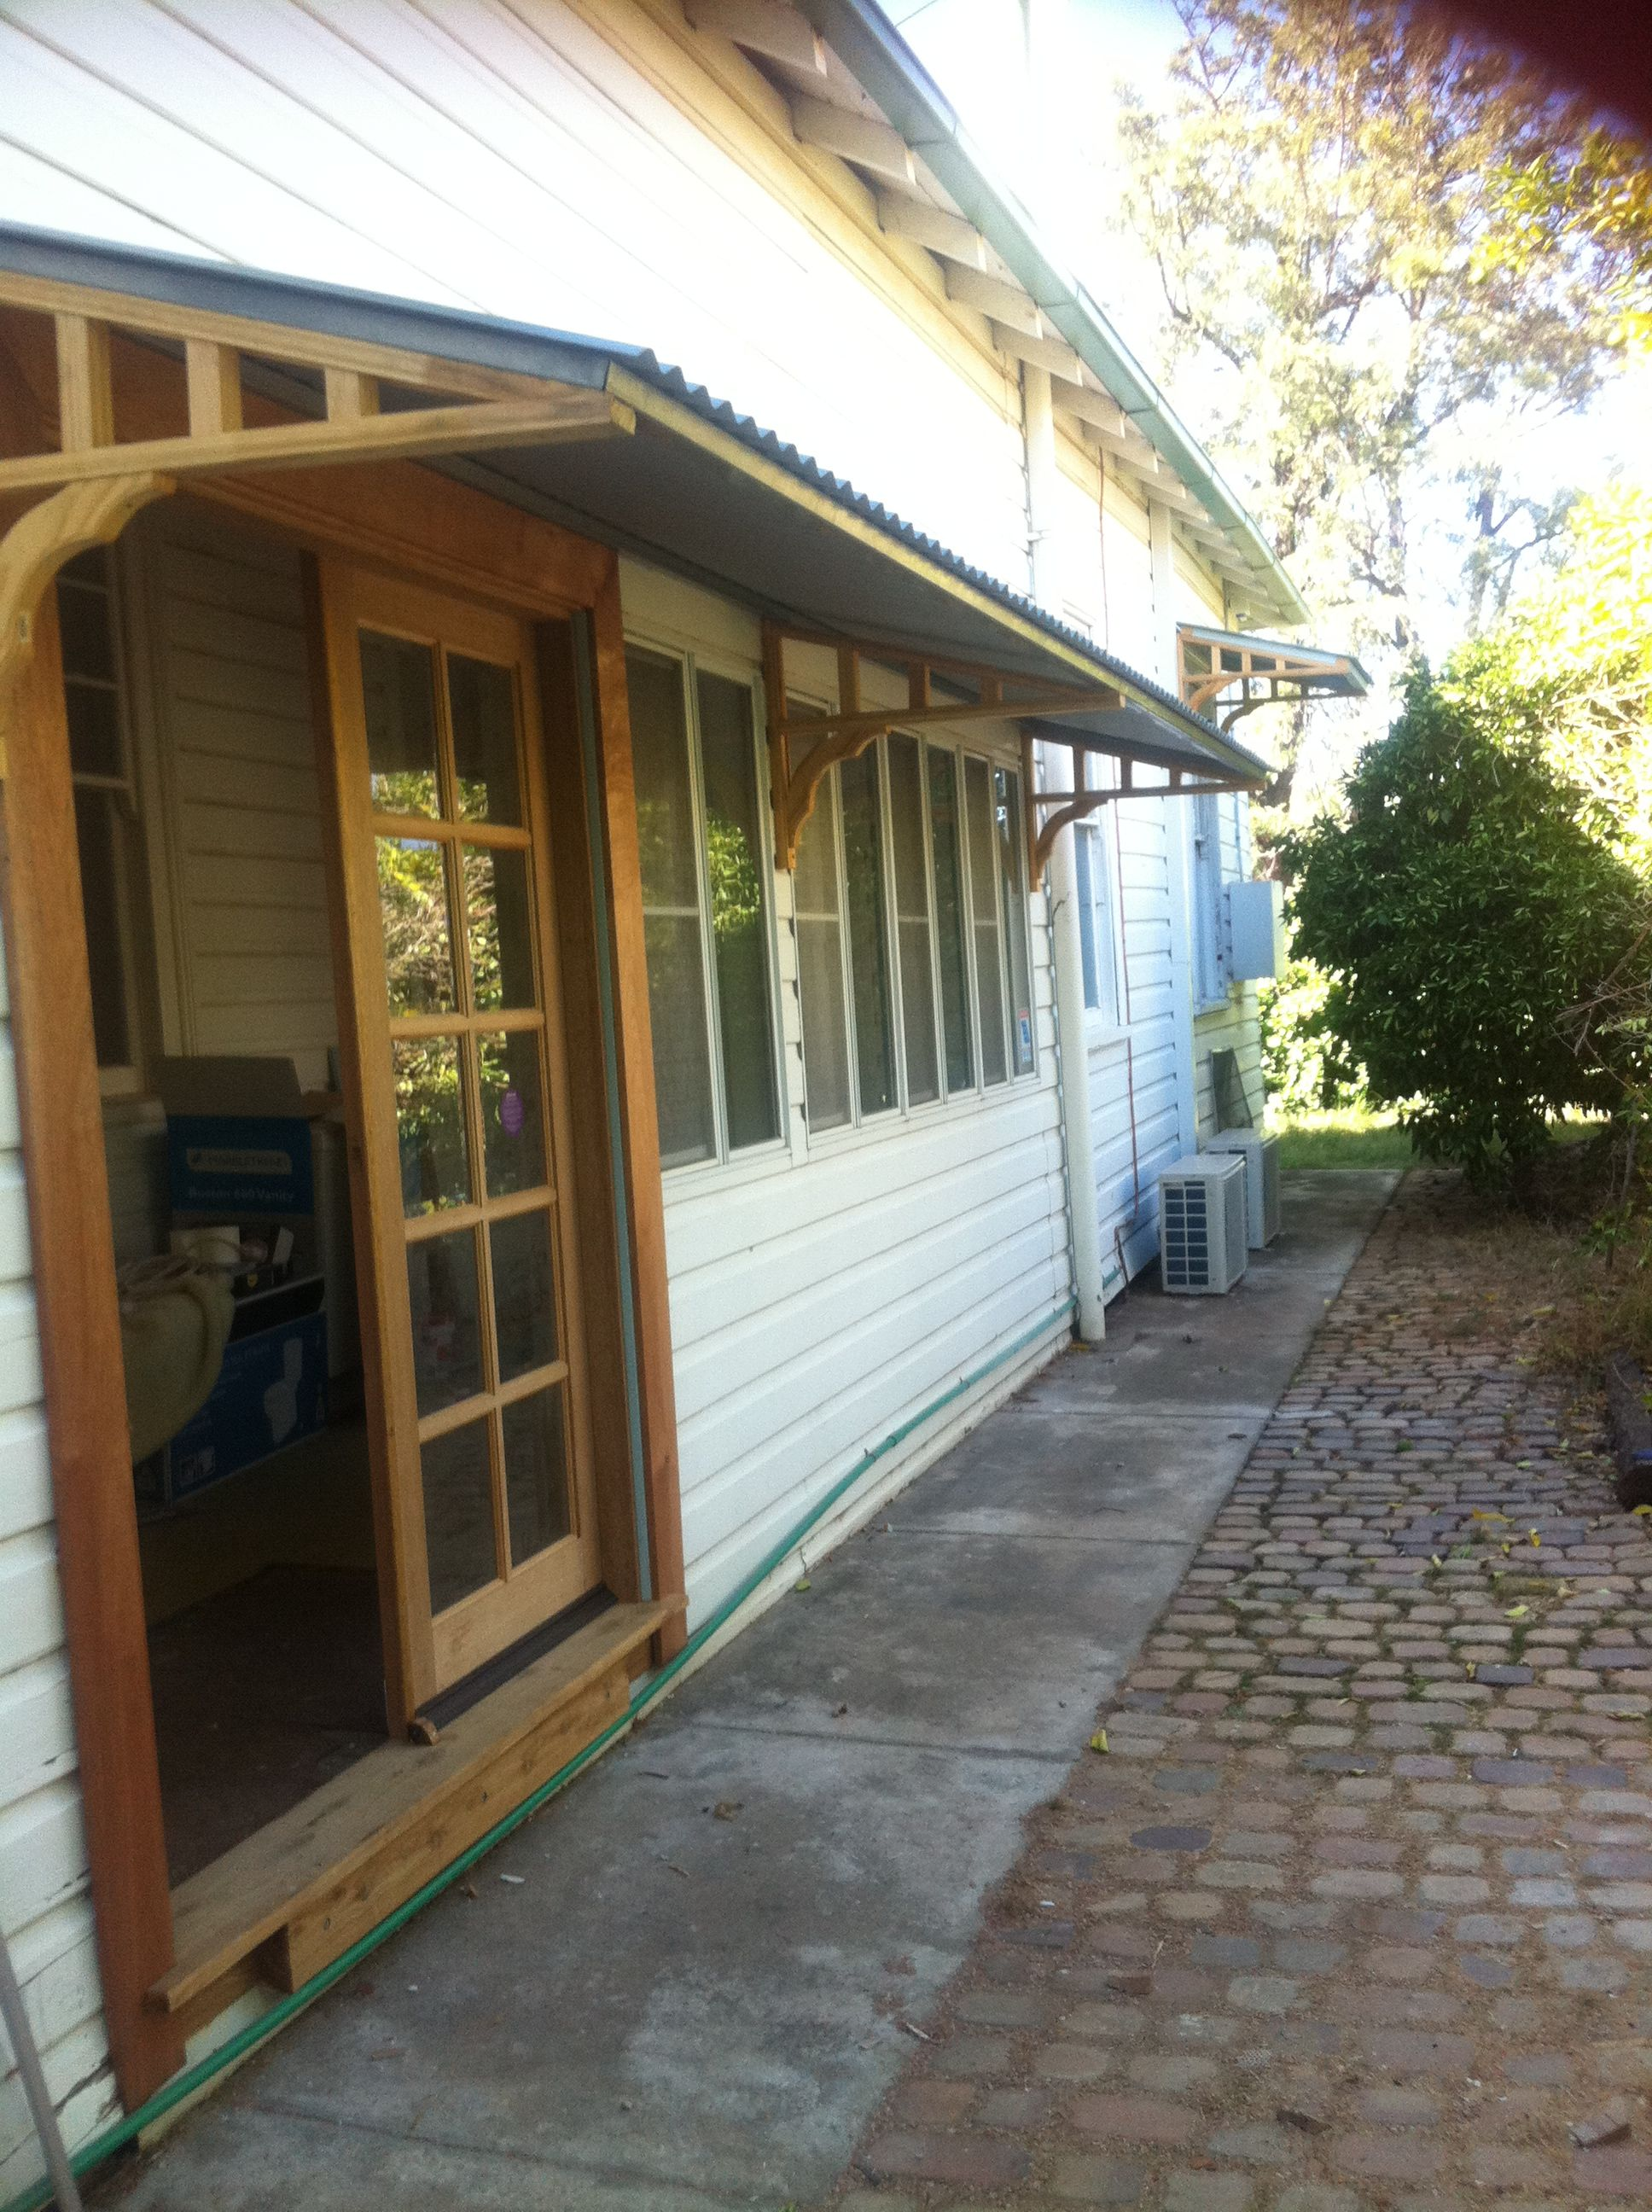 There we go new awning over new french doors and sun room & There we go new awning over new french doors and sun room | New ...